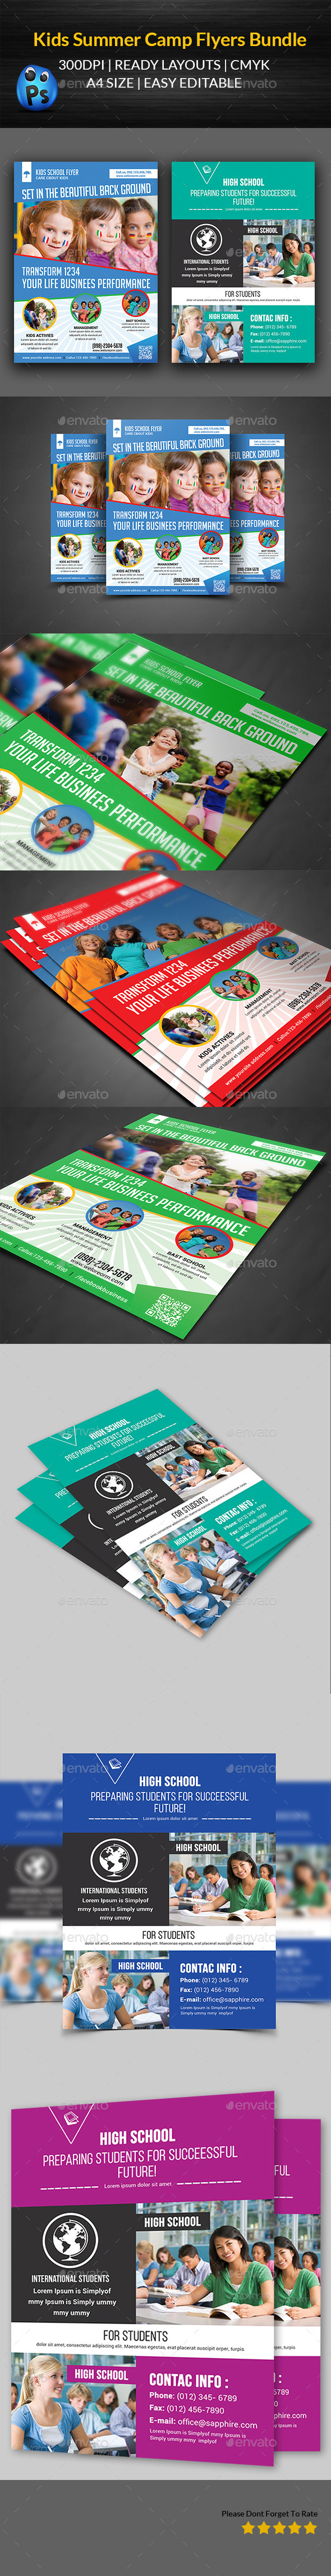 Kids Summer Flyers Bundle Templates - Corporate Flyers